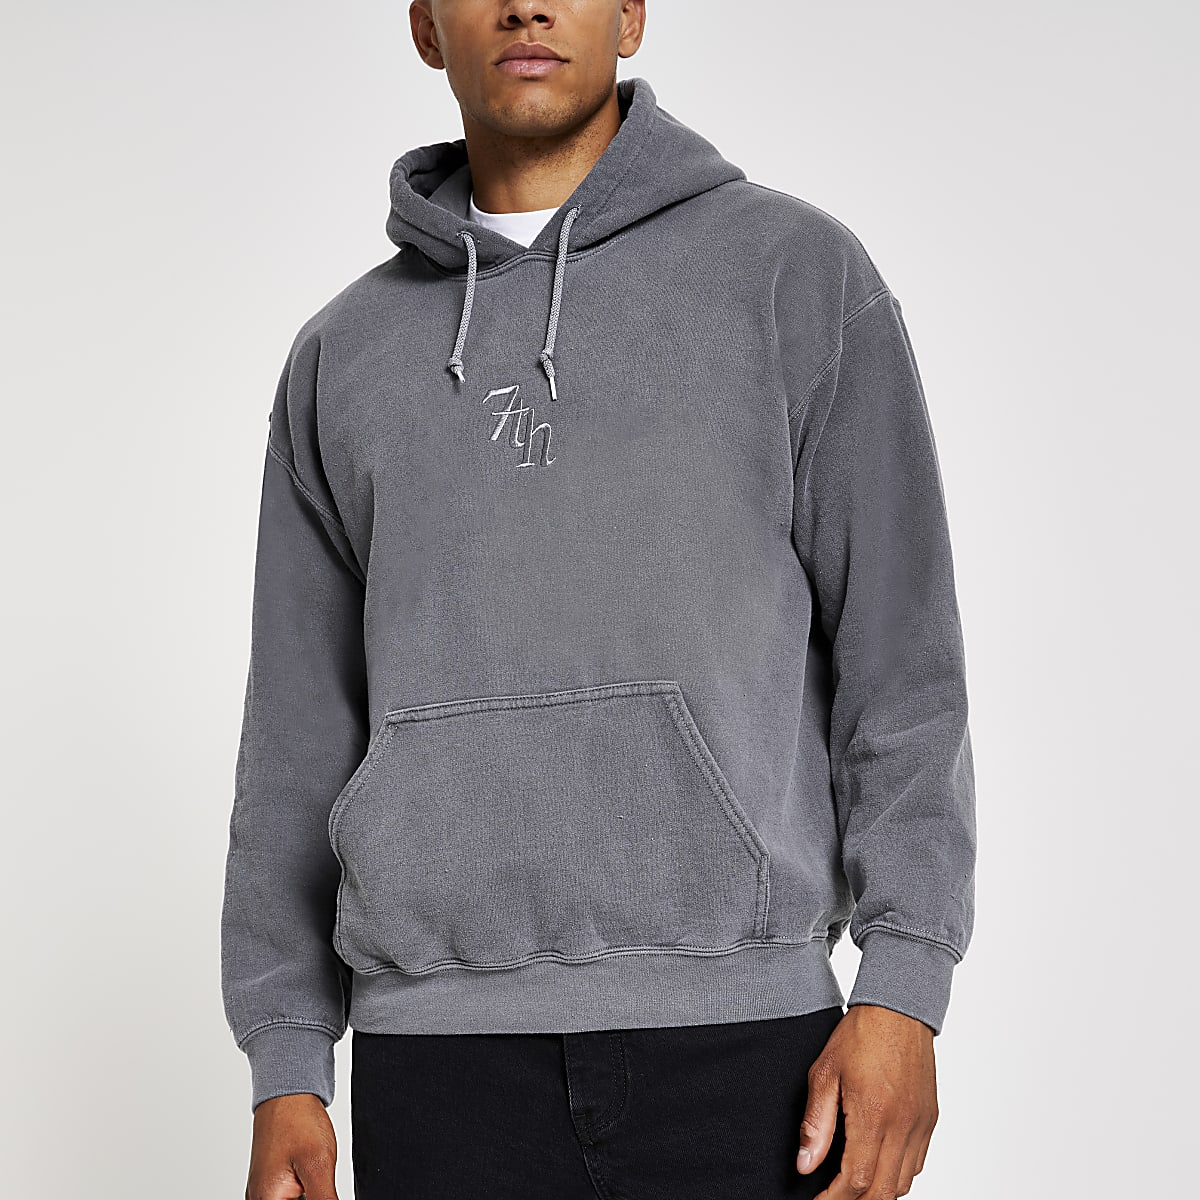 Black washed '7th' embroidered hoodie